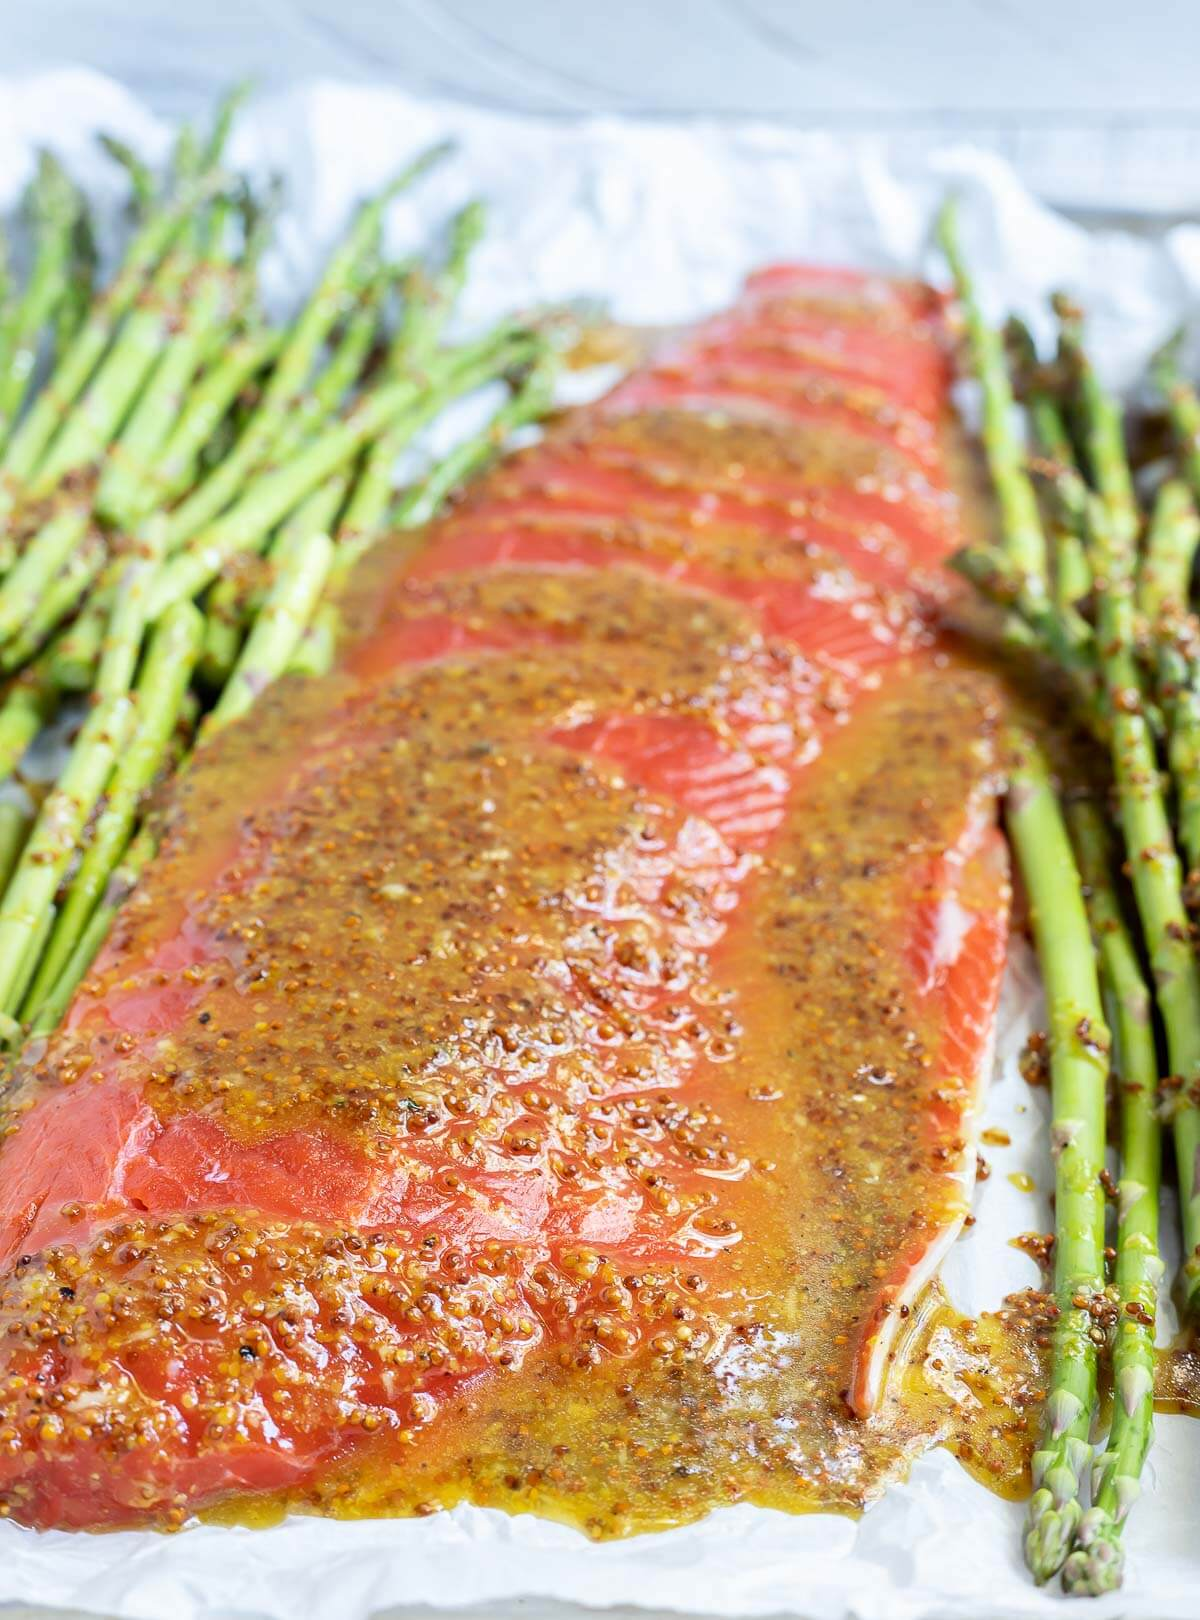 salmon asparagus and sauce on parchment lined sheet pan ready to bake